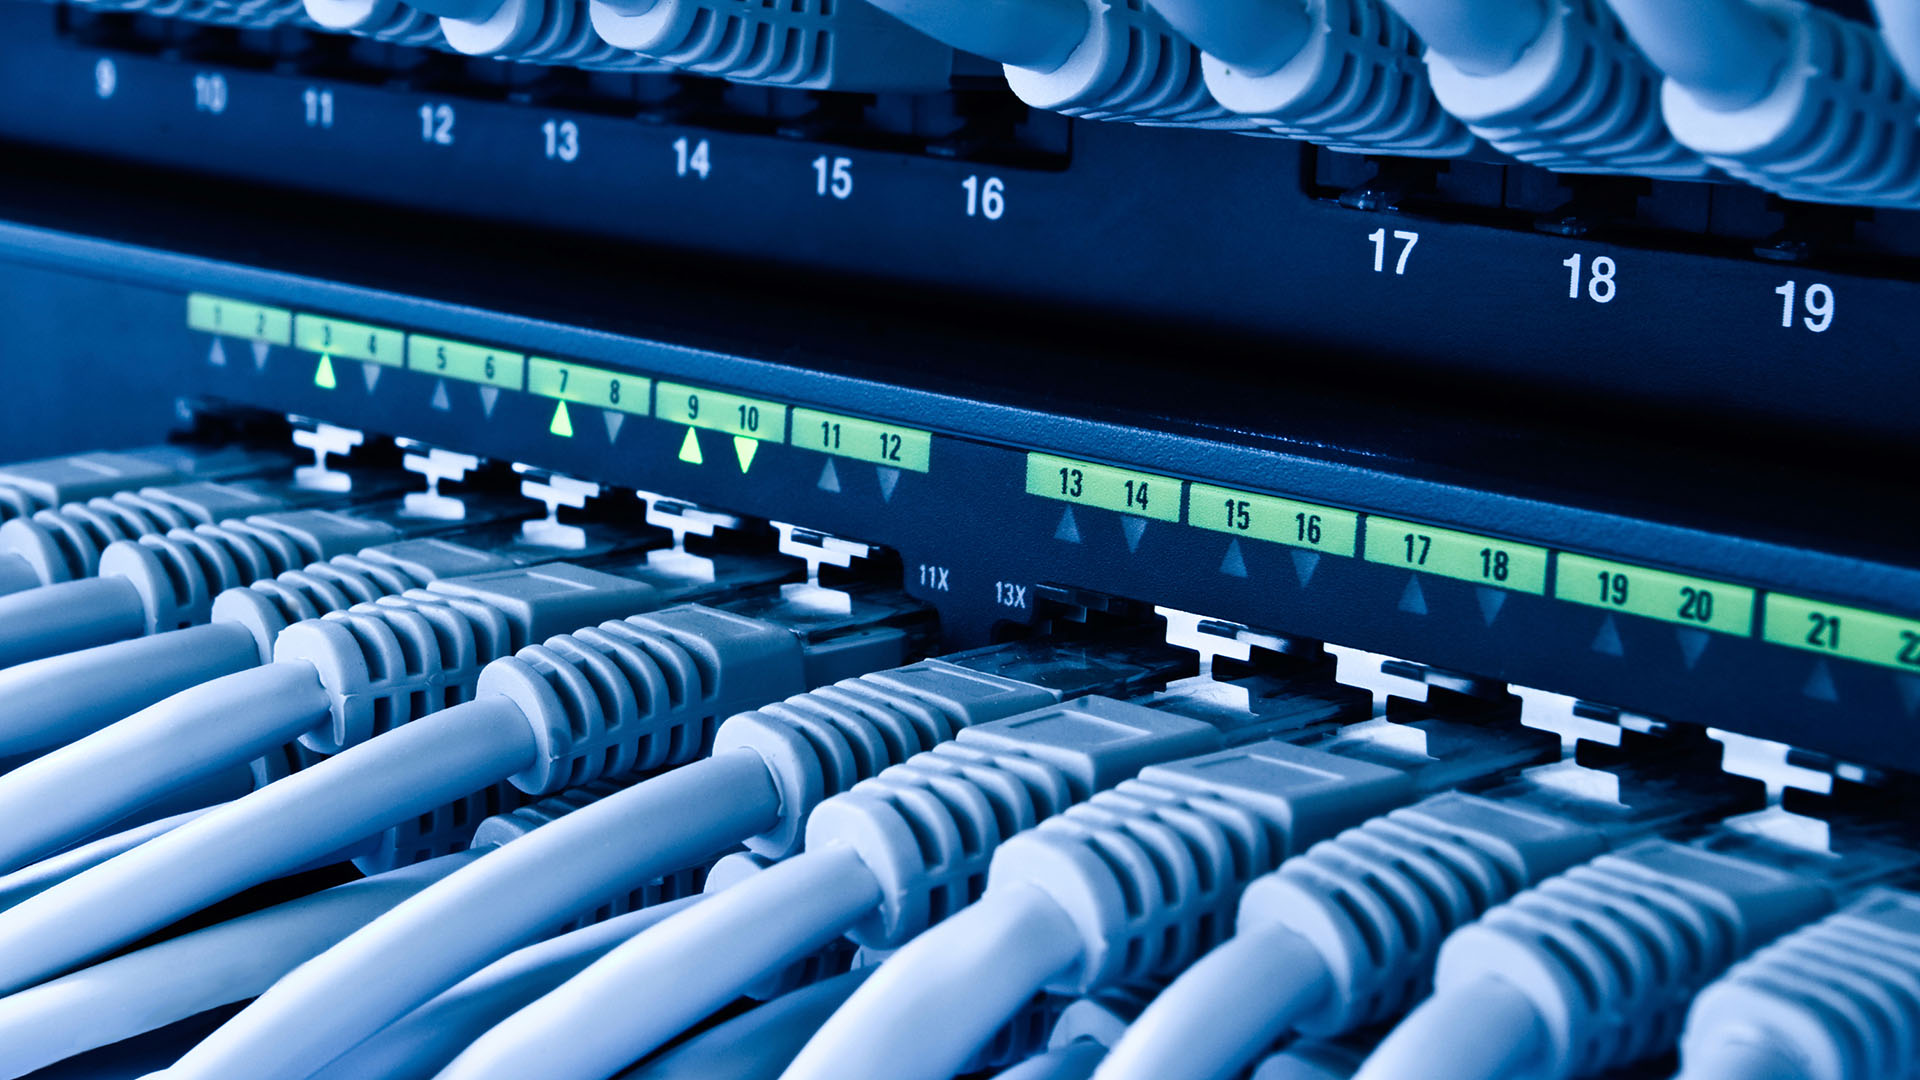 Pioneer Village Kentucky Premier Voice & Data Network Cabling Solutions